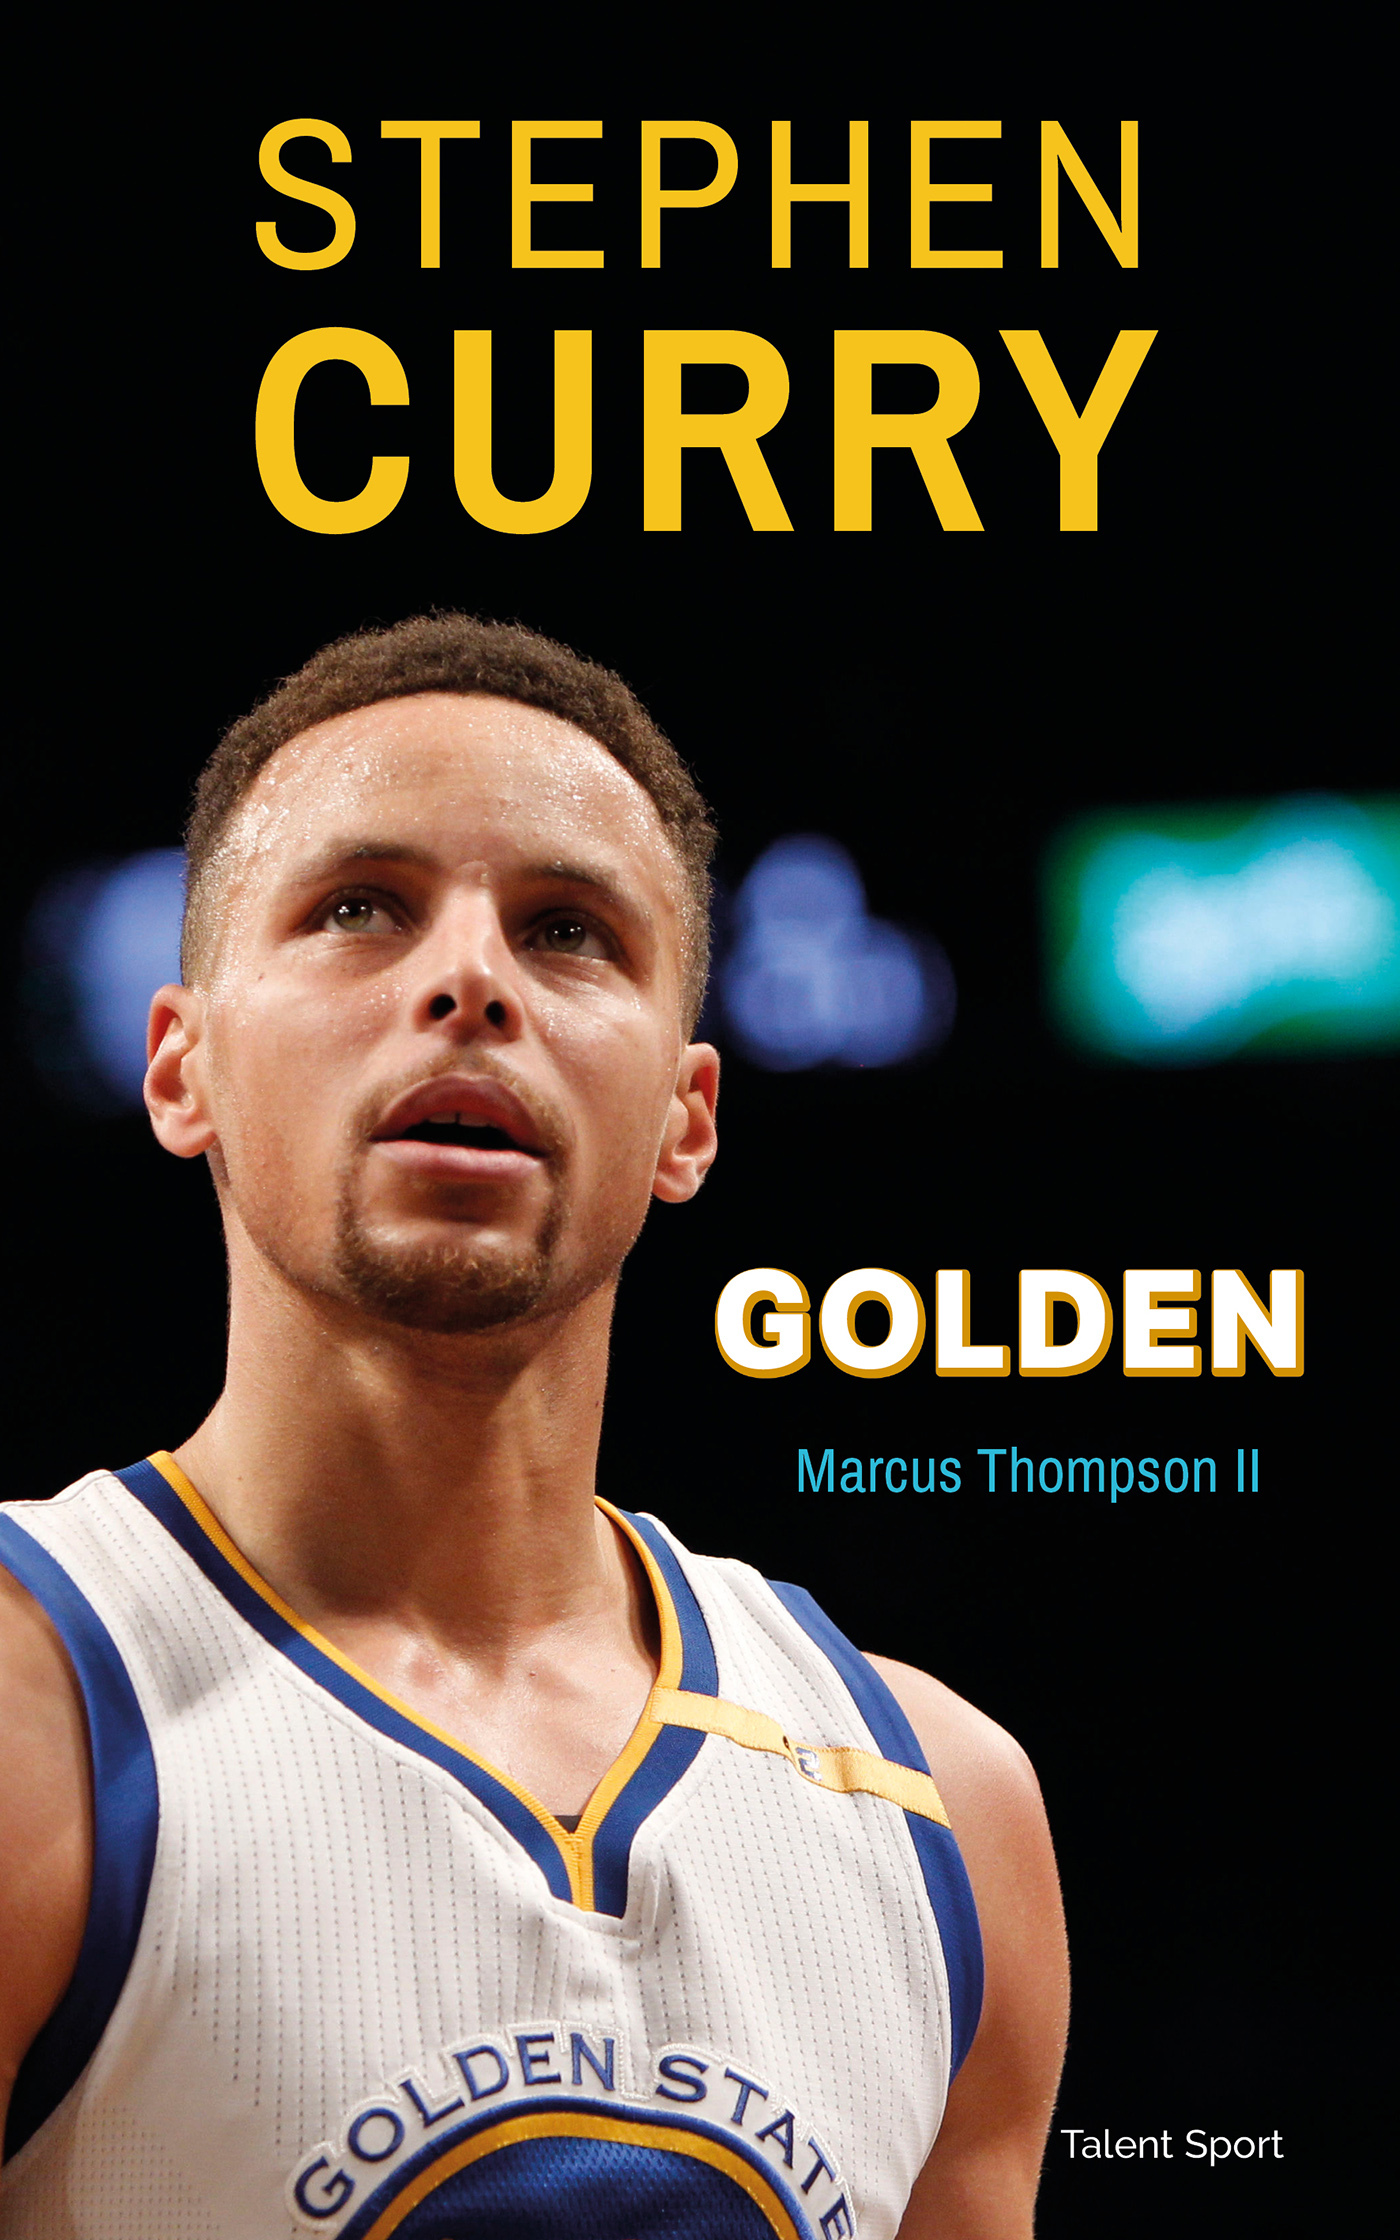 STEPHEN CURRY : GOLDEN